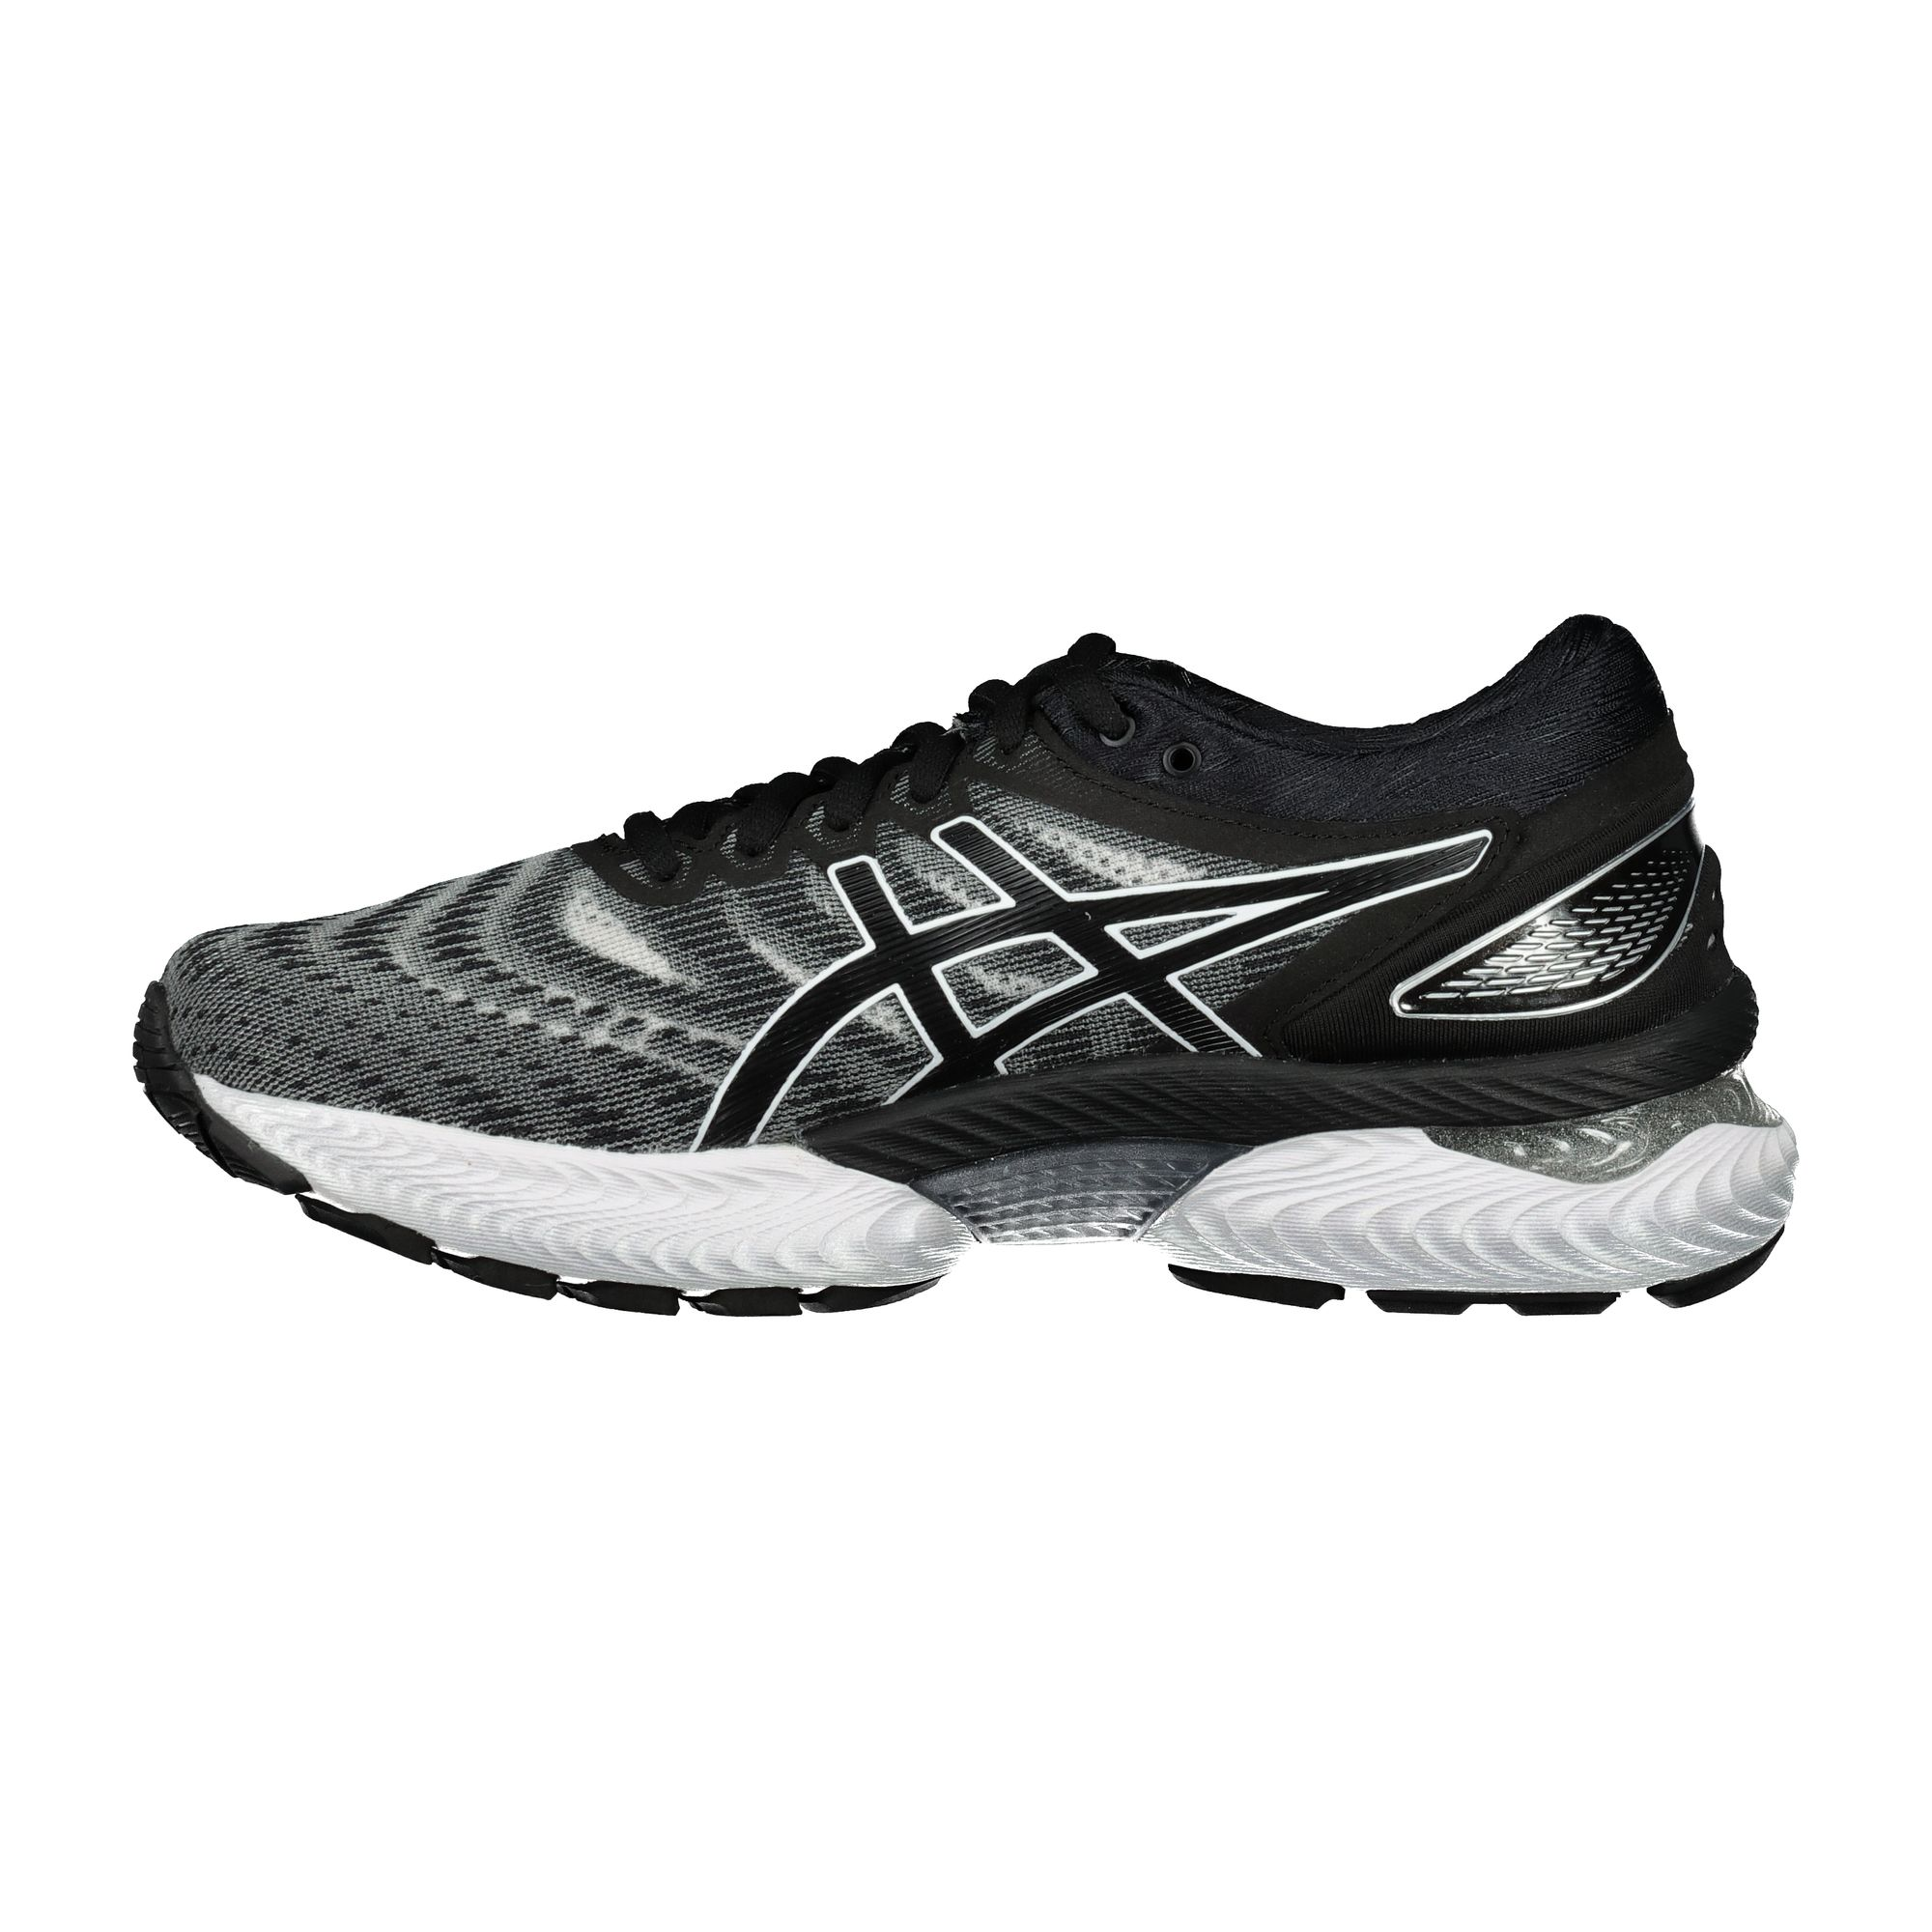 Details about Asics Gel-Nimbus 22 Womens Running Shoes White/Black- show  original title